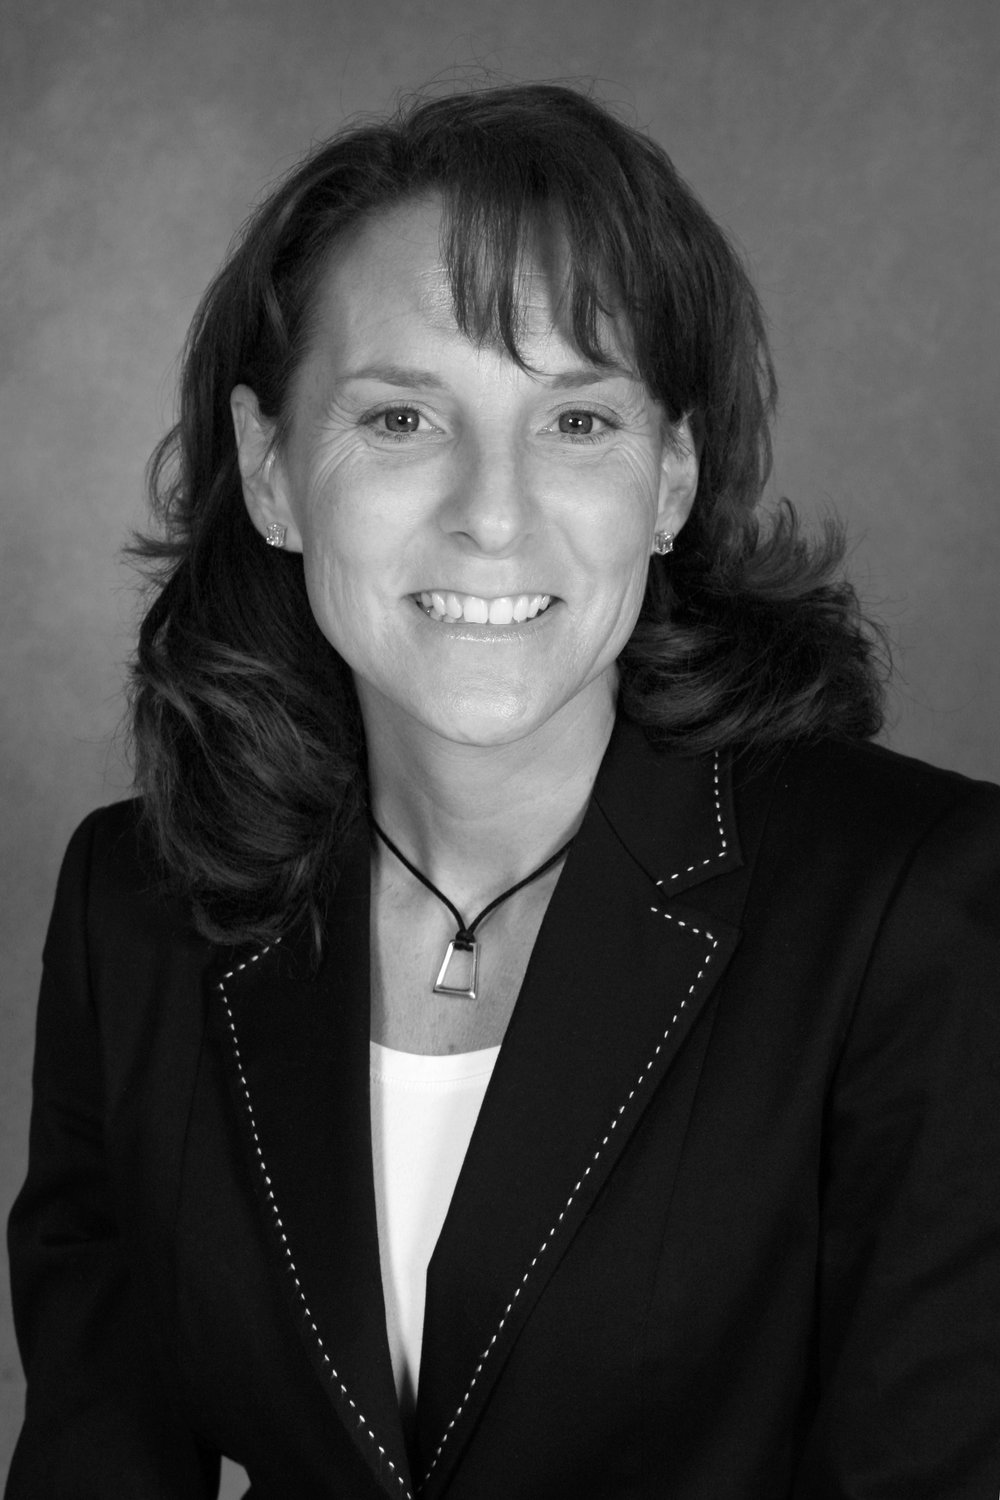 Michelle Grossman  President & CEO Phone: 402-614-8500  Michelle joined Combined Health Agencies Drive (CHAD) D.B.A.  Community Health Charities of Nebraska in 1997. In 2006, she became the President and Chief Executive Officer. She received her BS from University of Nebraska at Kearney and lives in Omaha with her husband Gregg and their fur children.